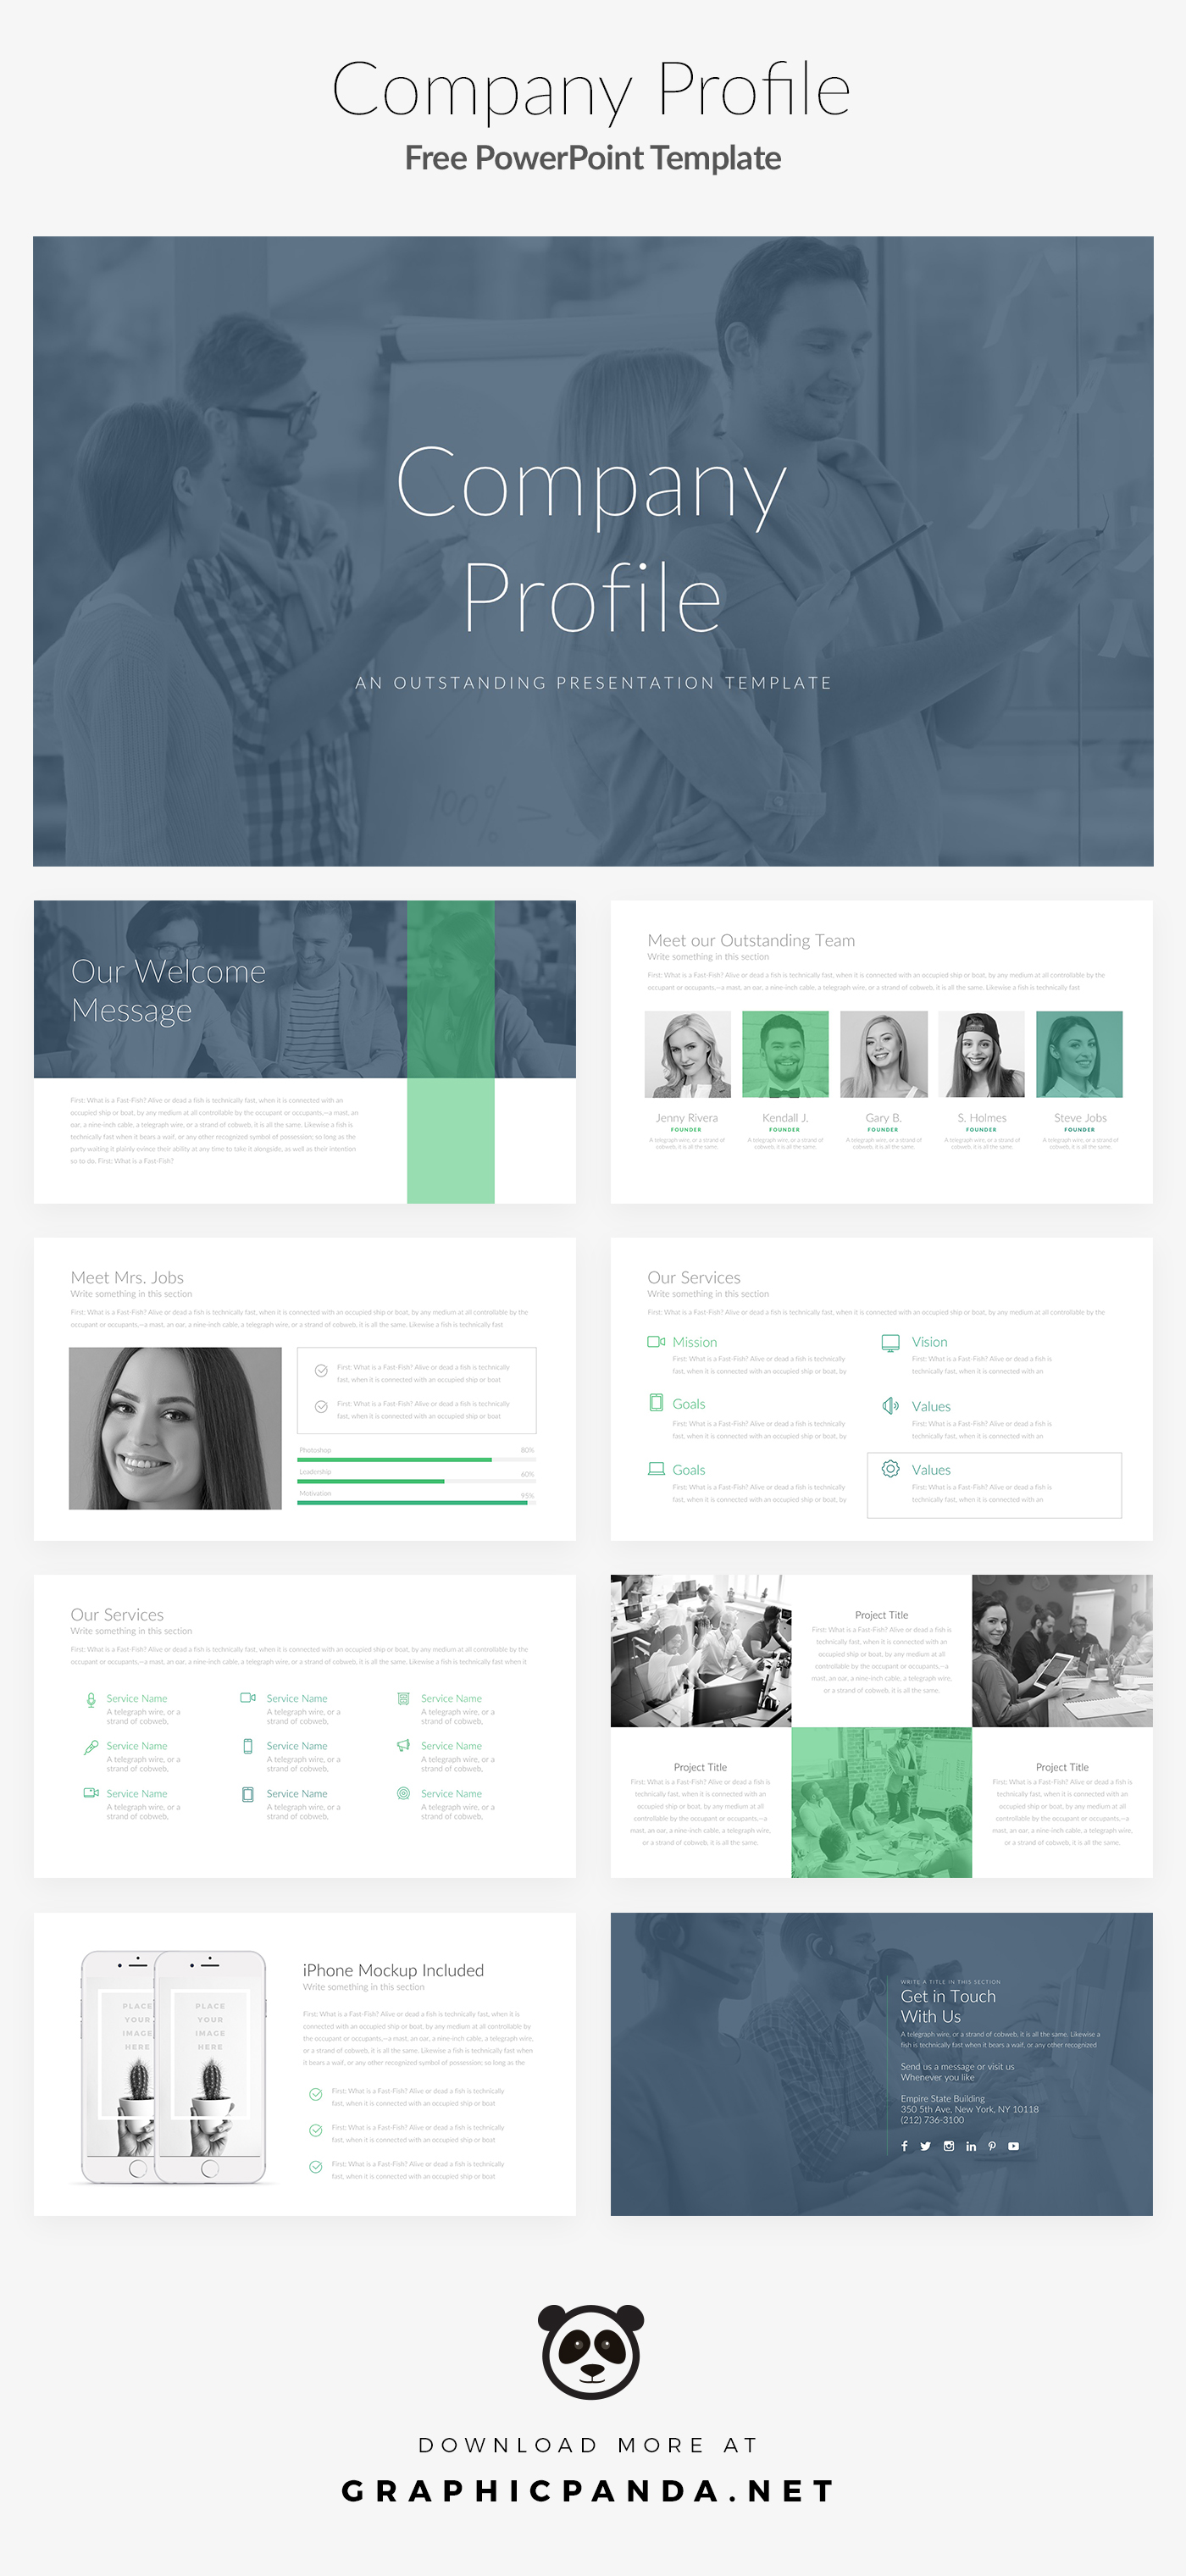 free download company profile powerpoint template webdesigner depot